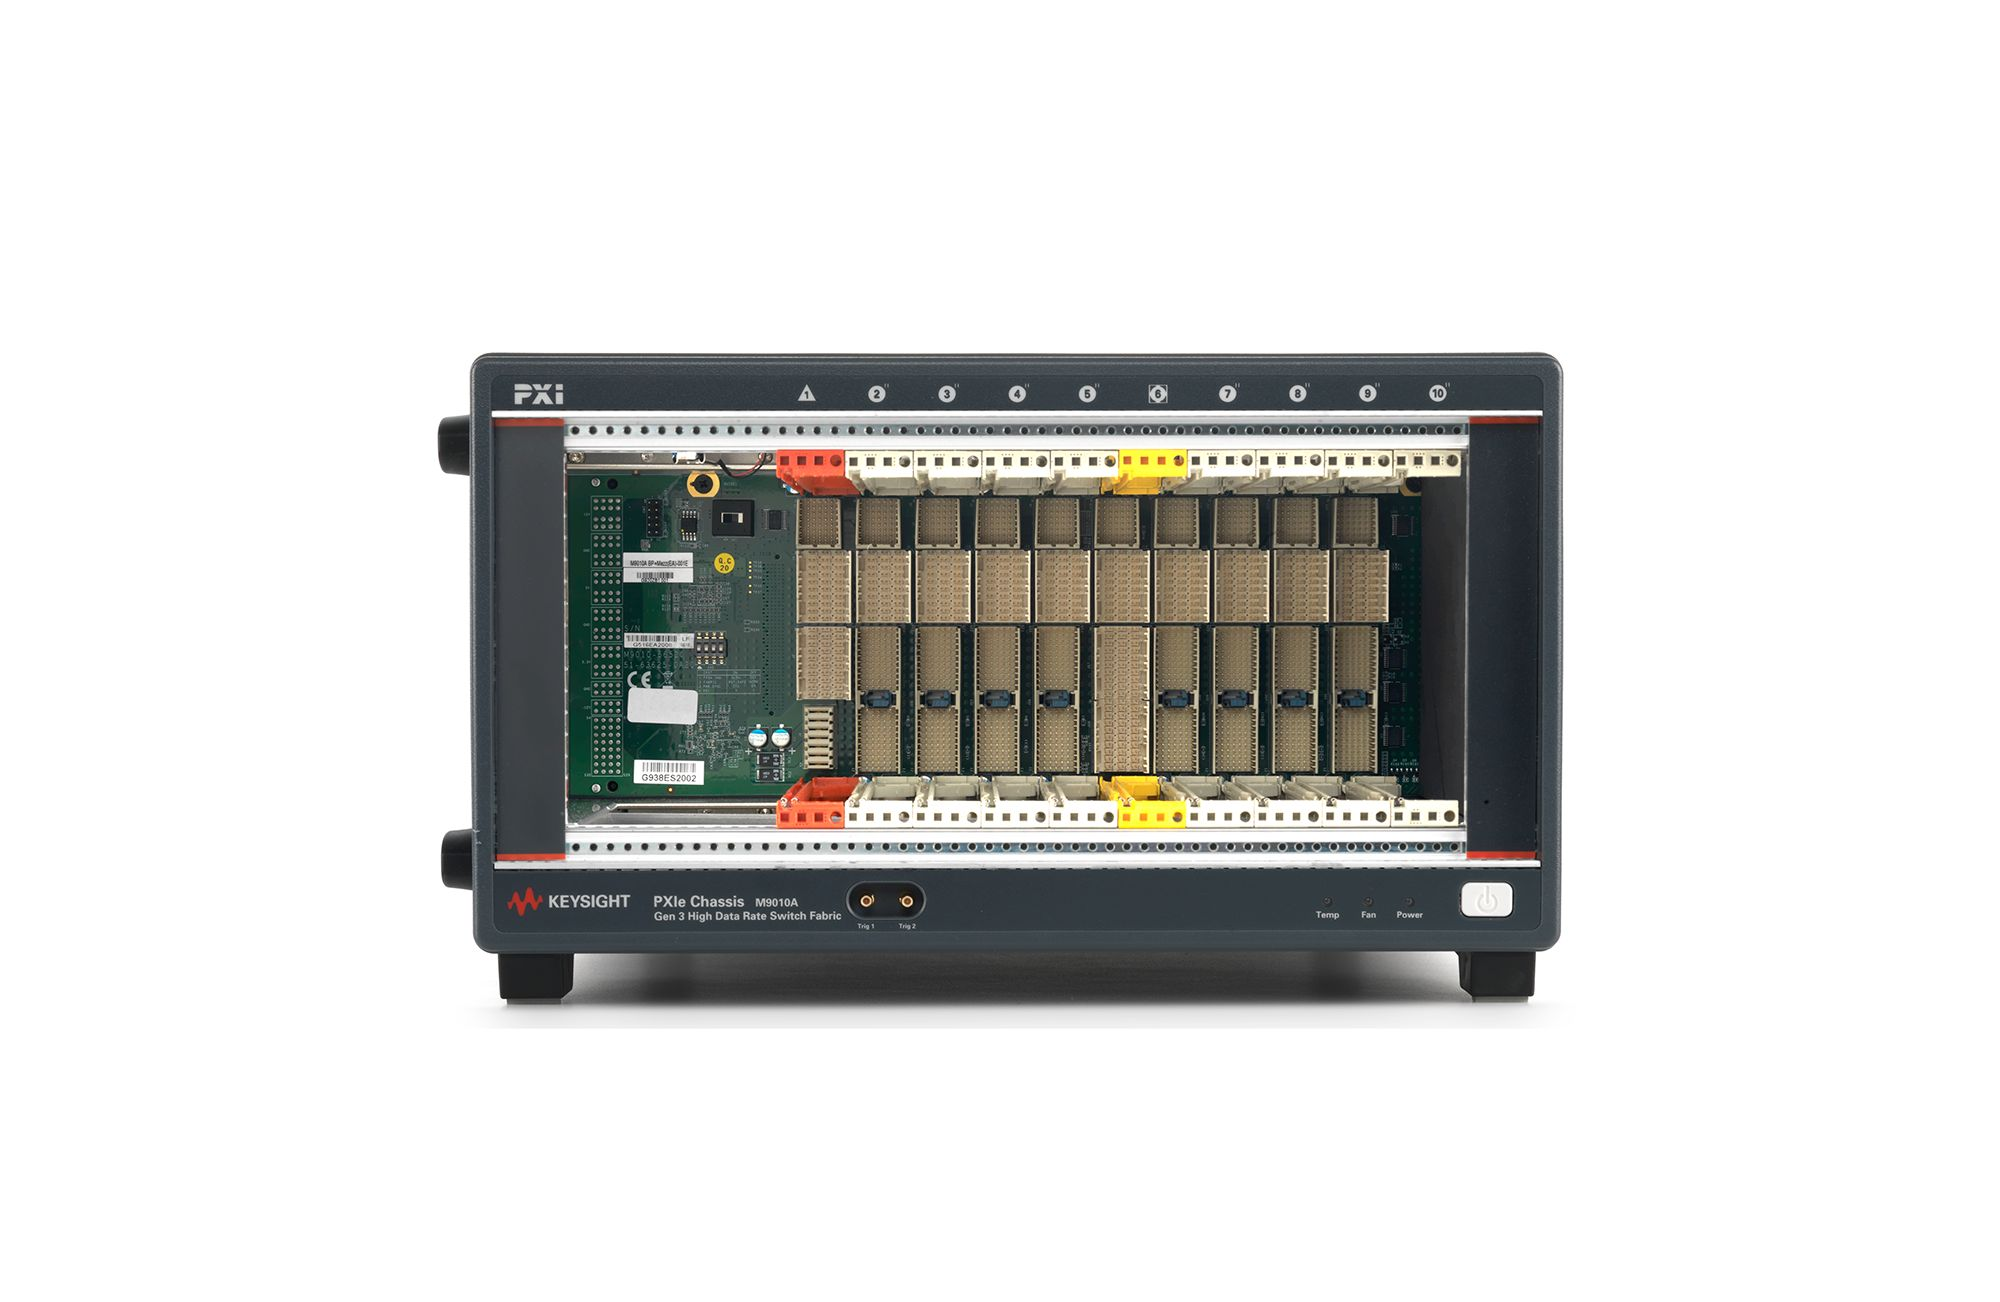 M9010A PXIe Chassis: 10-slot, 3U, 24 GB/s, Gen 3